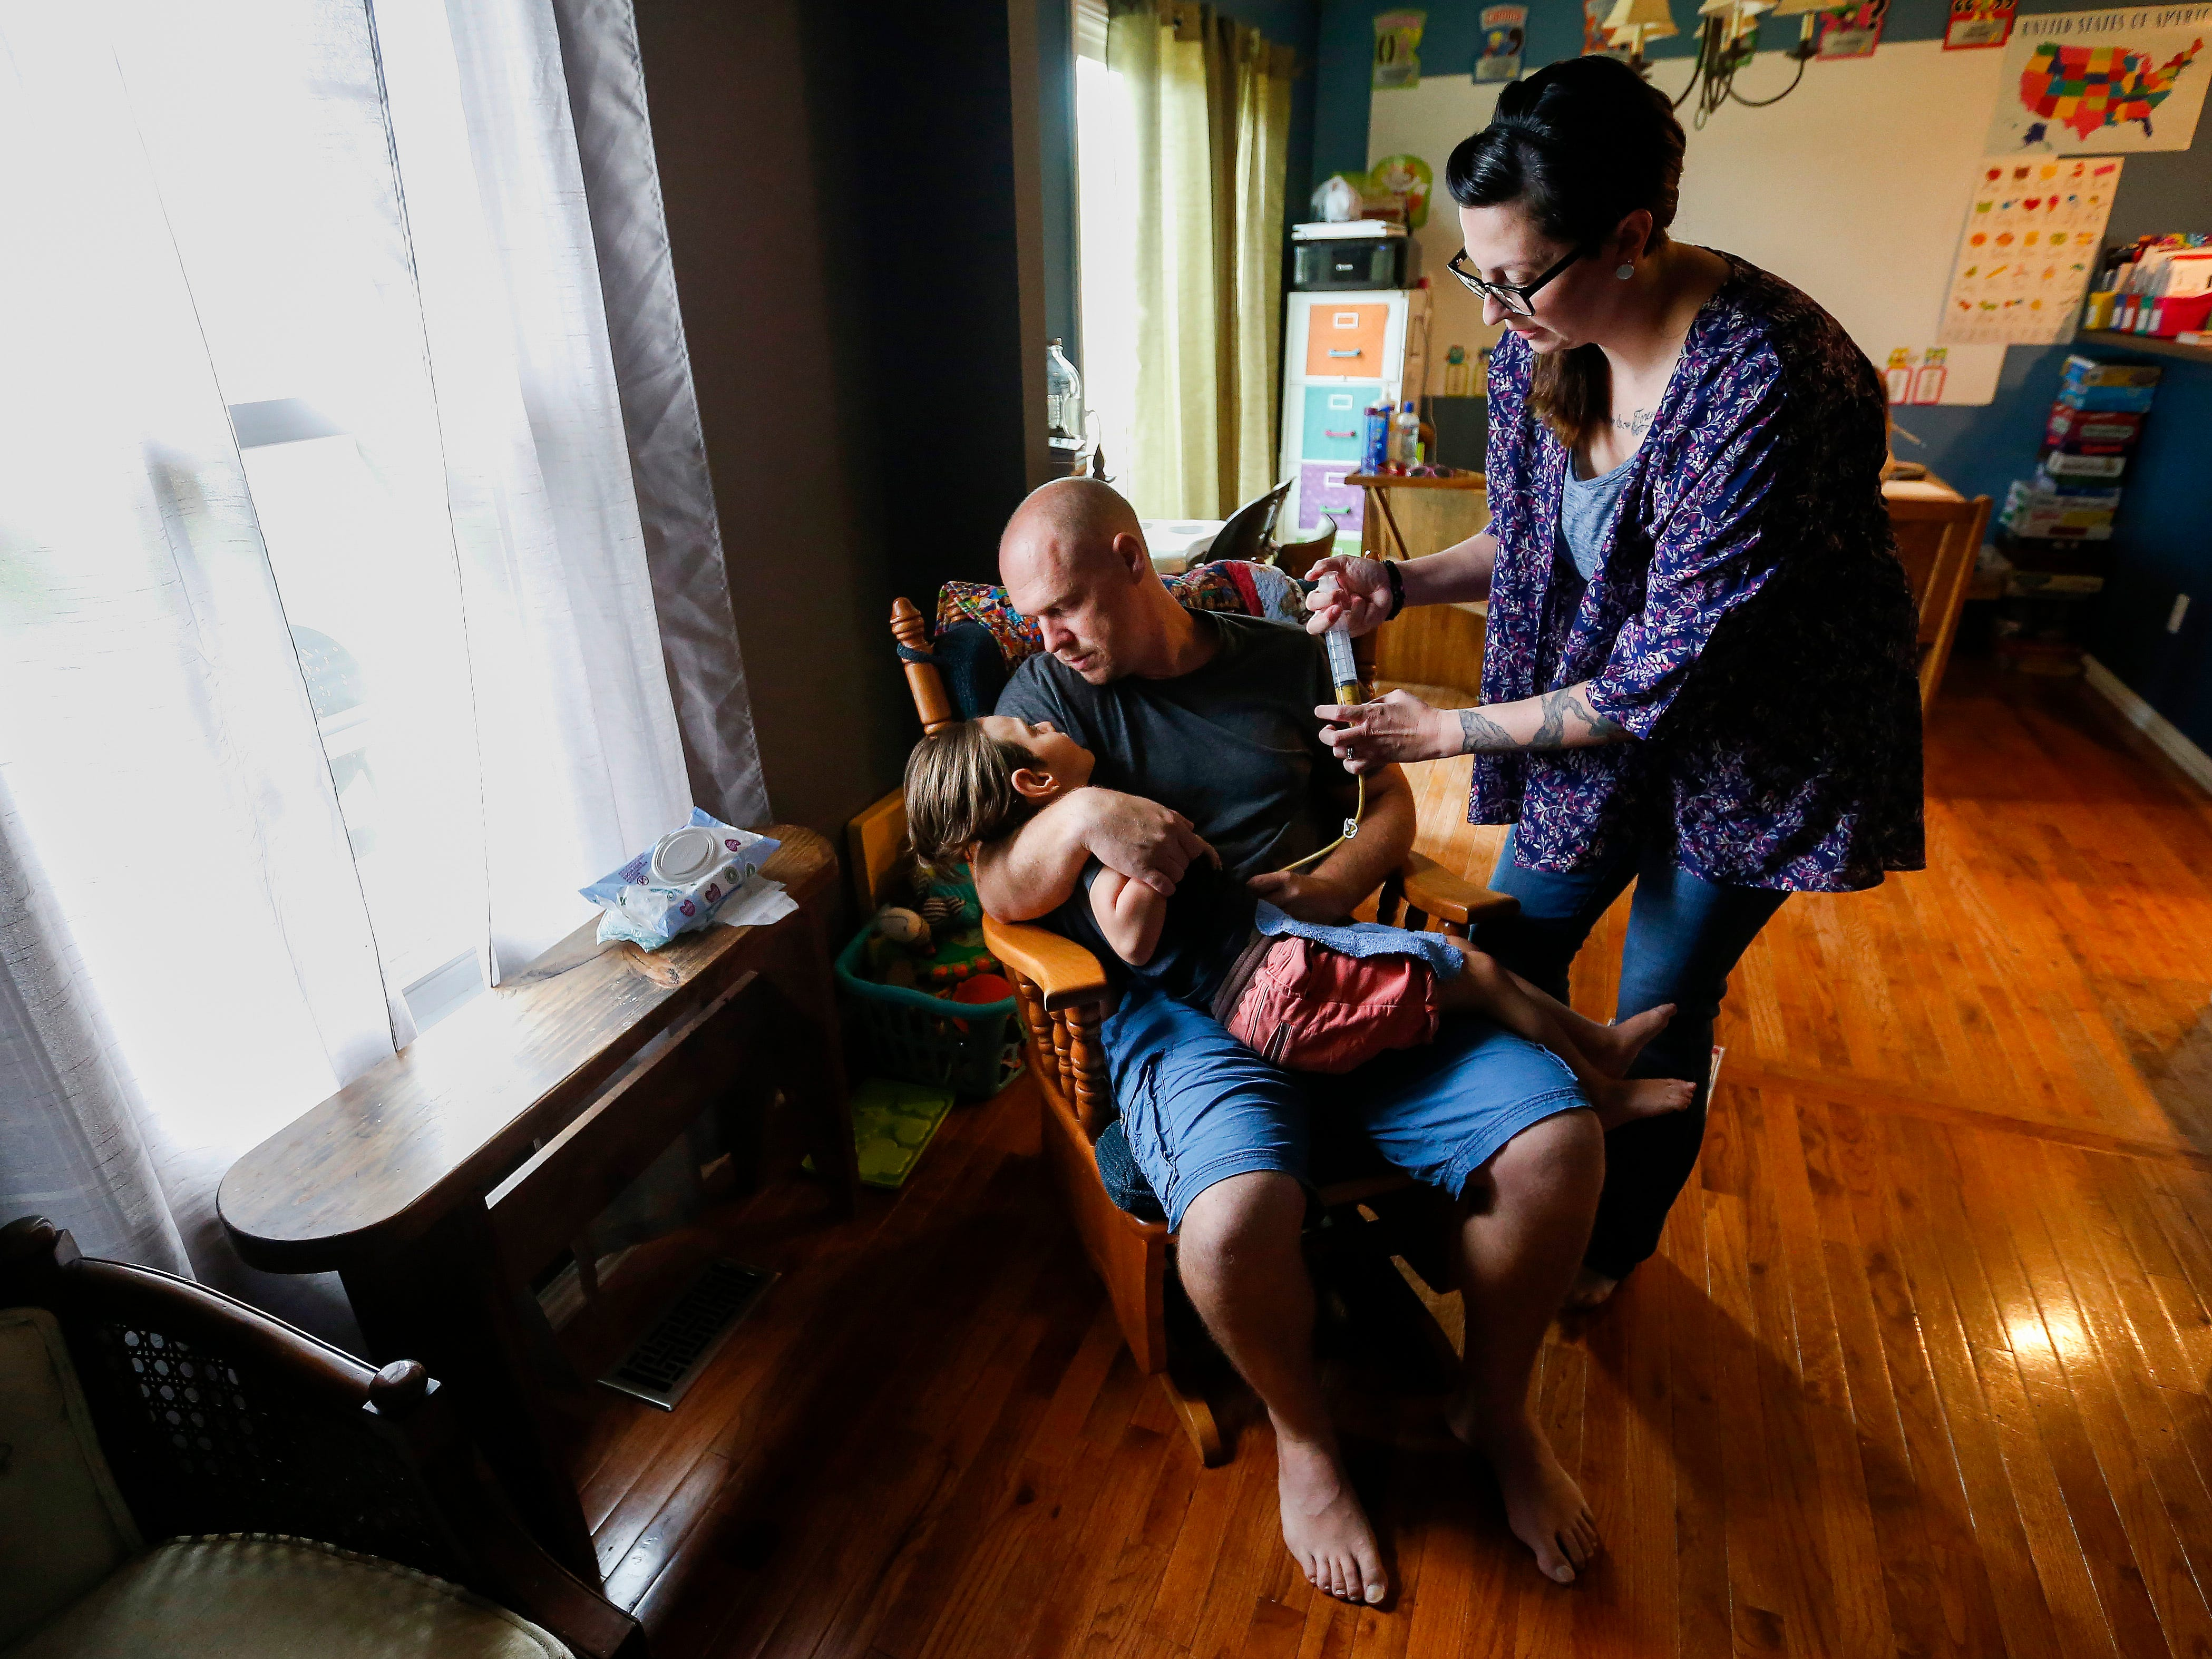 Ashley Markum injects food into her son Ayden's feeding tube as he sits on his dad Chris Markum's lap at their home in Rogersville on June 12, 2018.